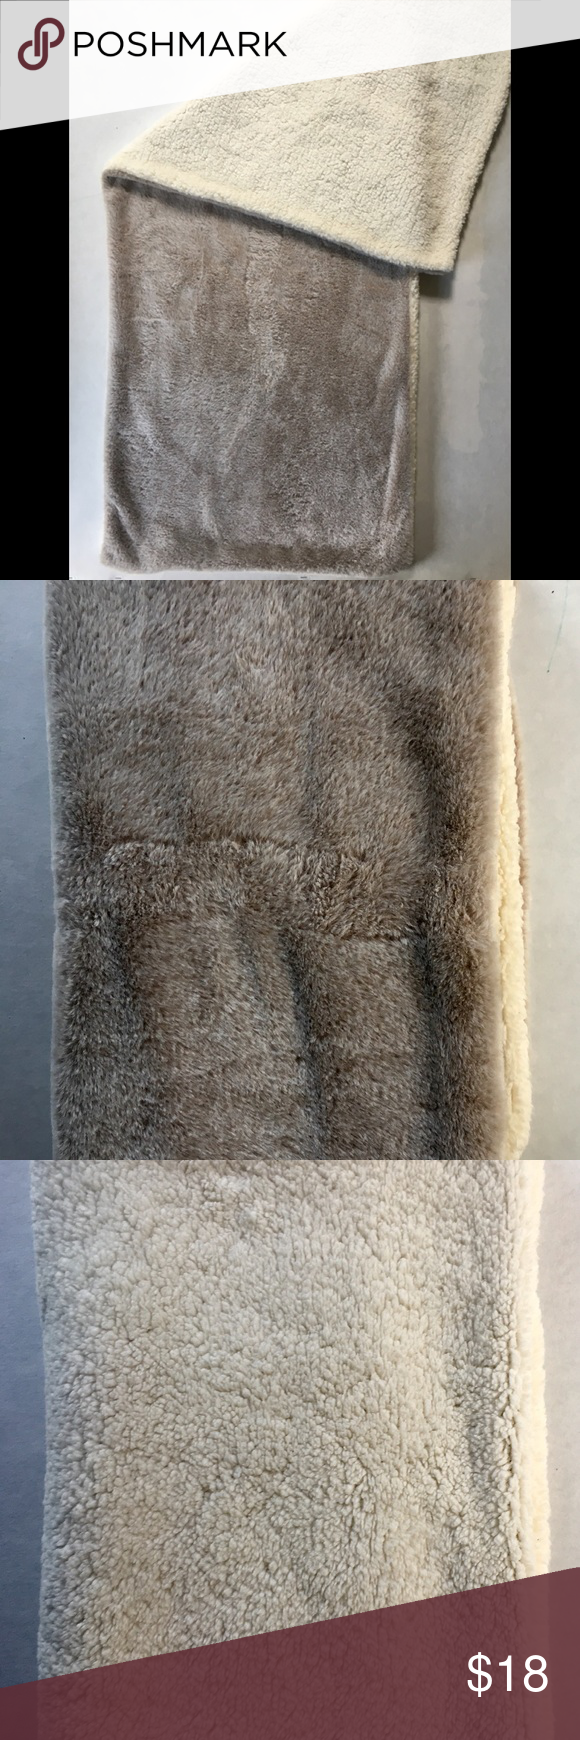 Body Pillow Cover NWOT Brand new, one side grey faux fur the opposite side cream...